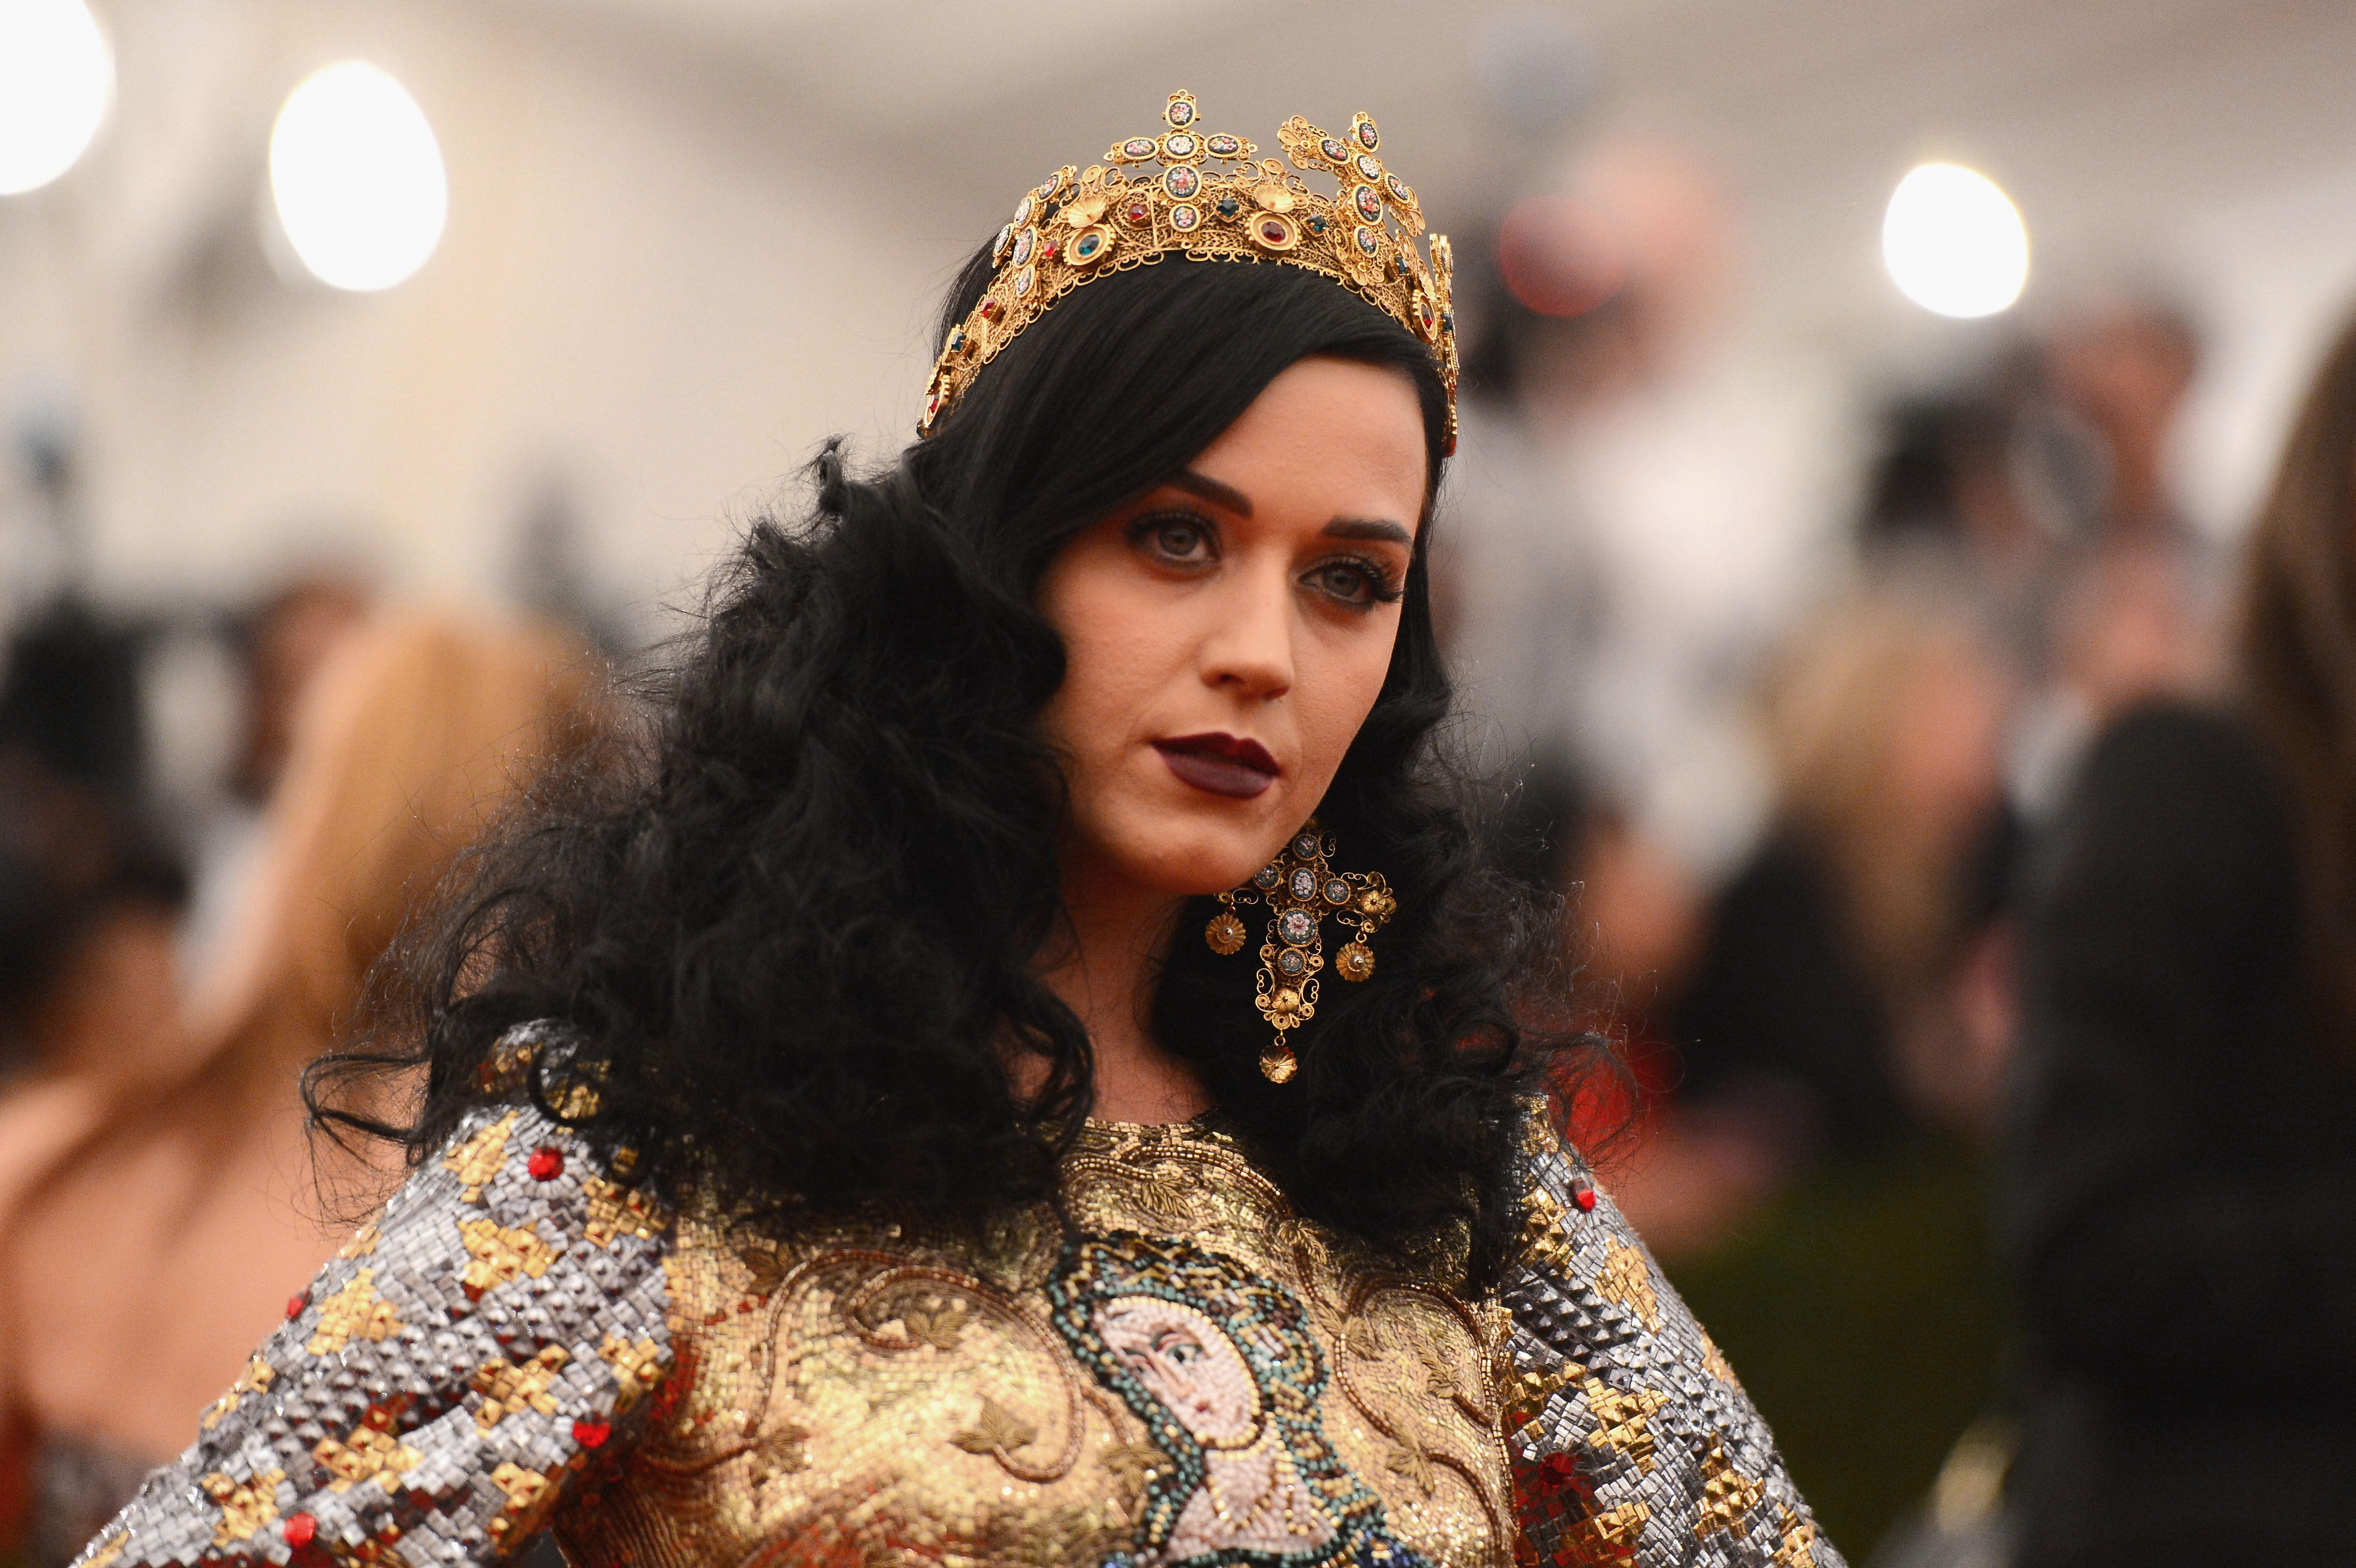 NEW YORK, NY - MAY 06:  Katy Perry attends the Costume Institute Gala for the 'PUNK: Chaos to Couture' exhibition at the Metr